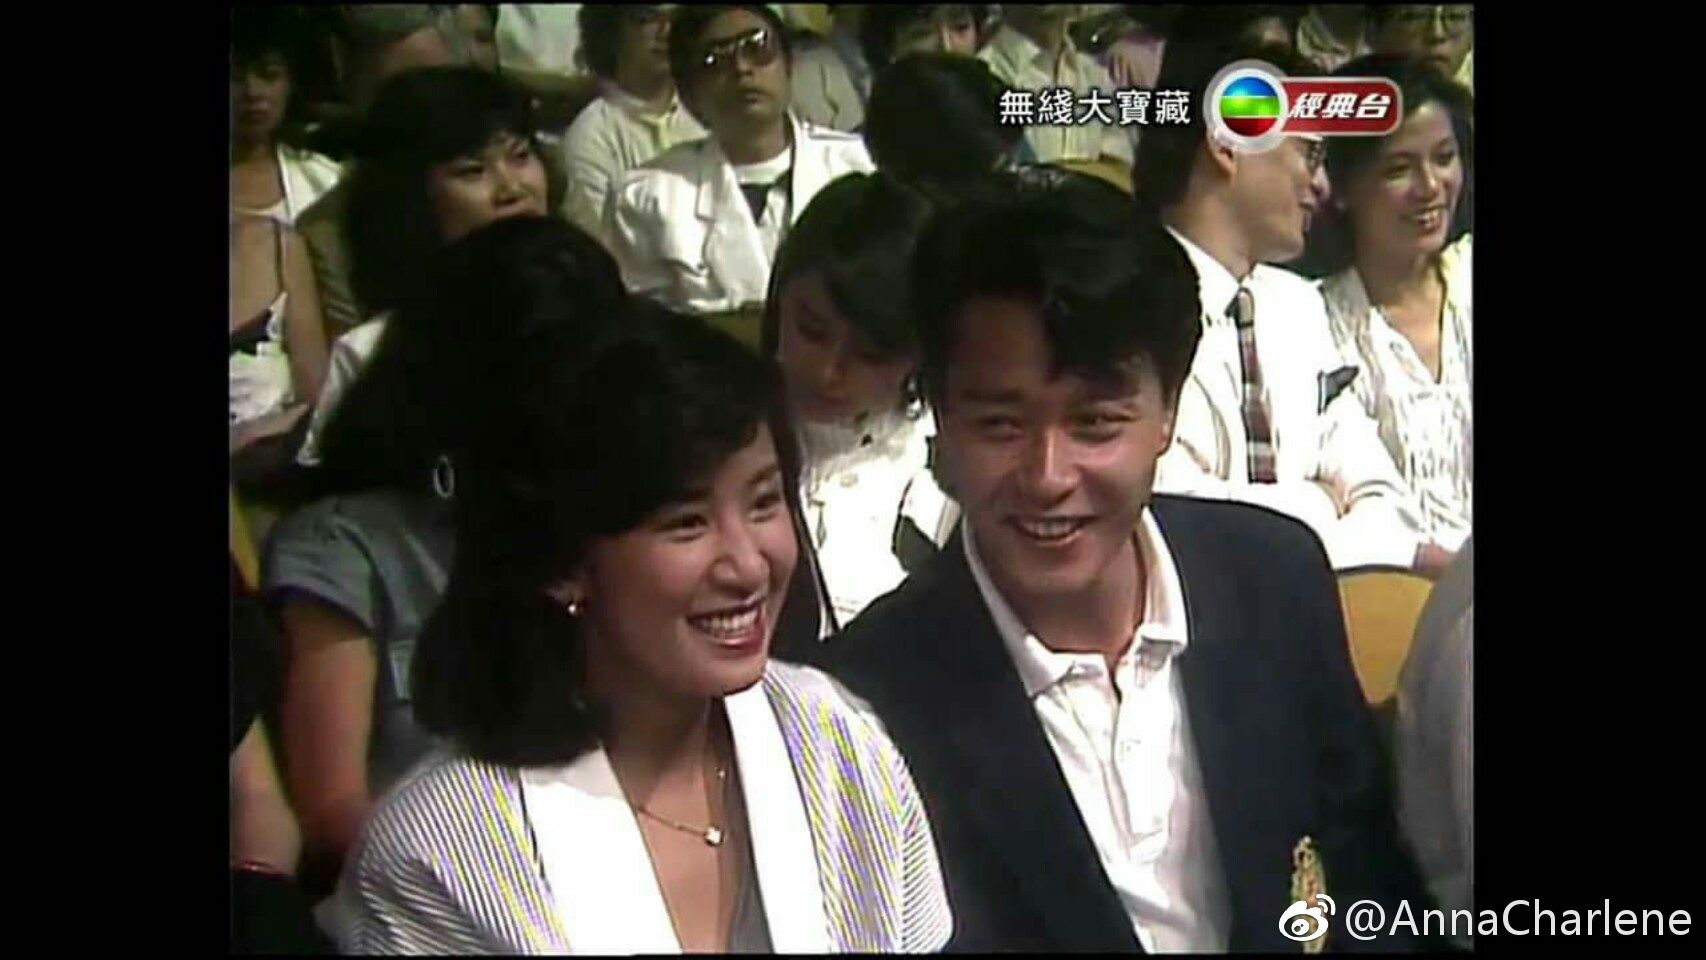 1984 in audience01